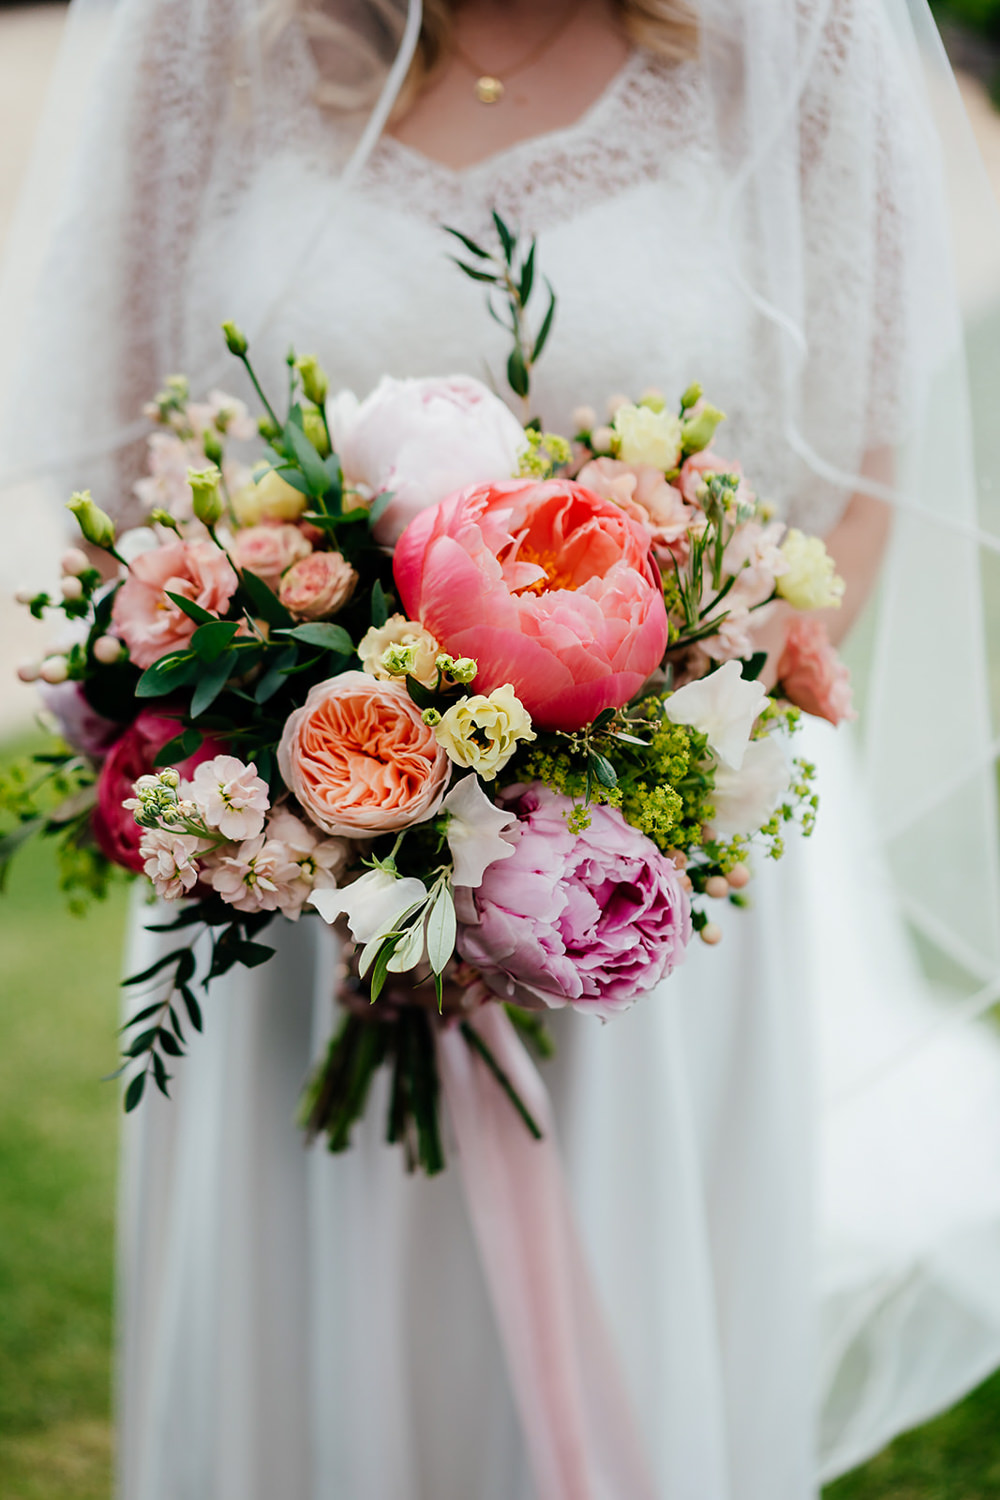 Bouquet Flowers Bride Bridal Peony Peonies Coral Charm Rose Ribbon Clock Barn Wedding Angela Ward Brown